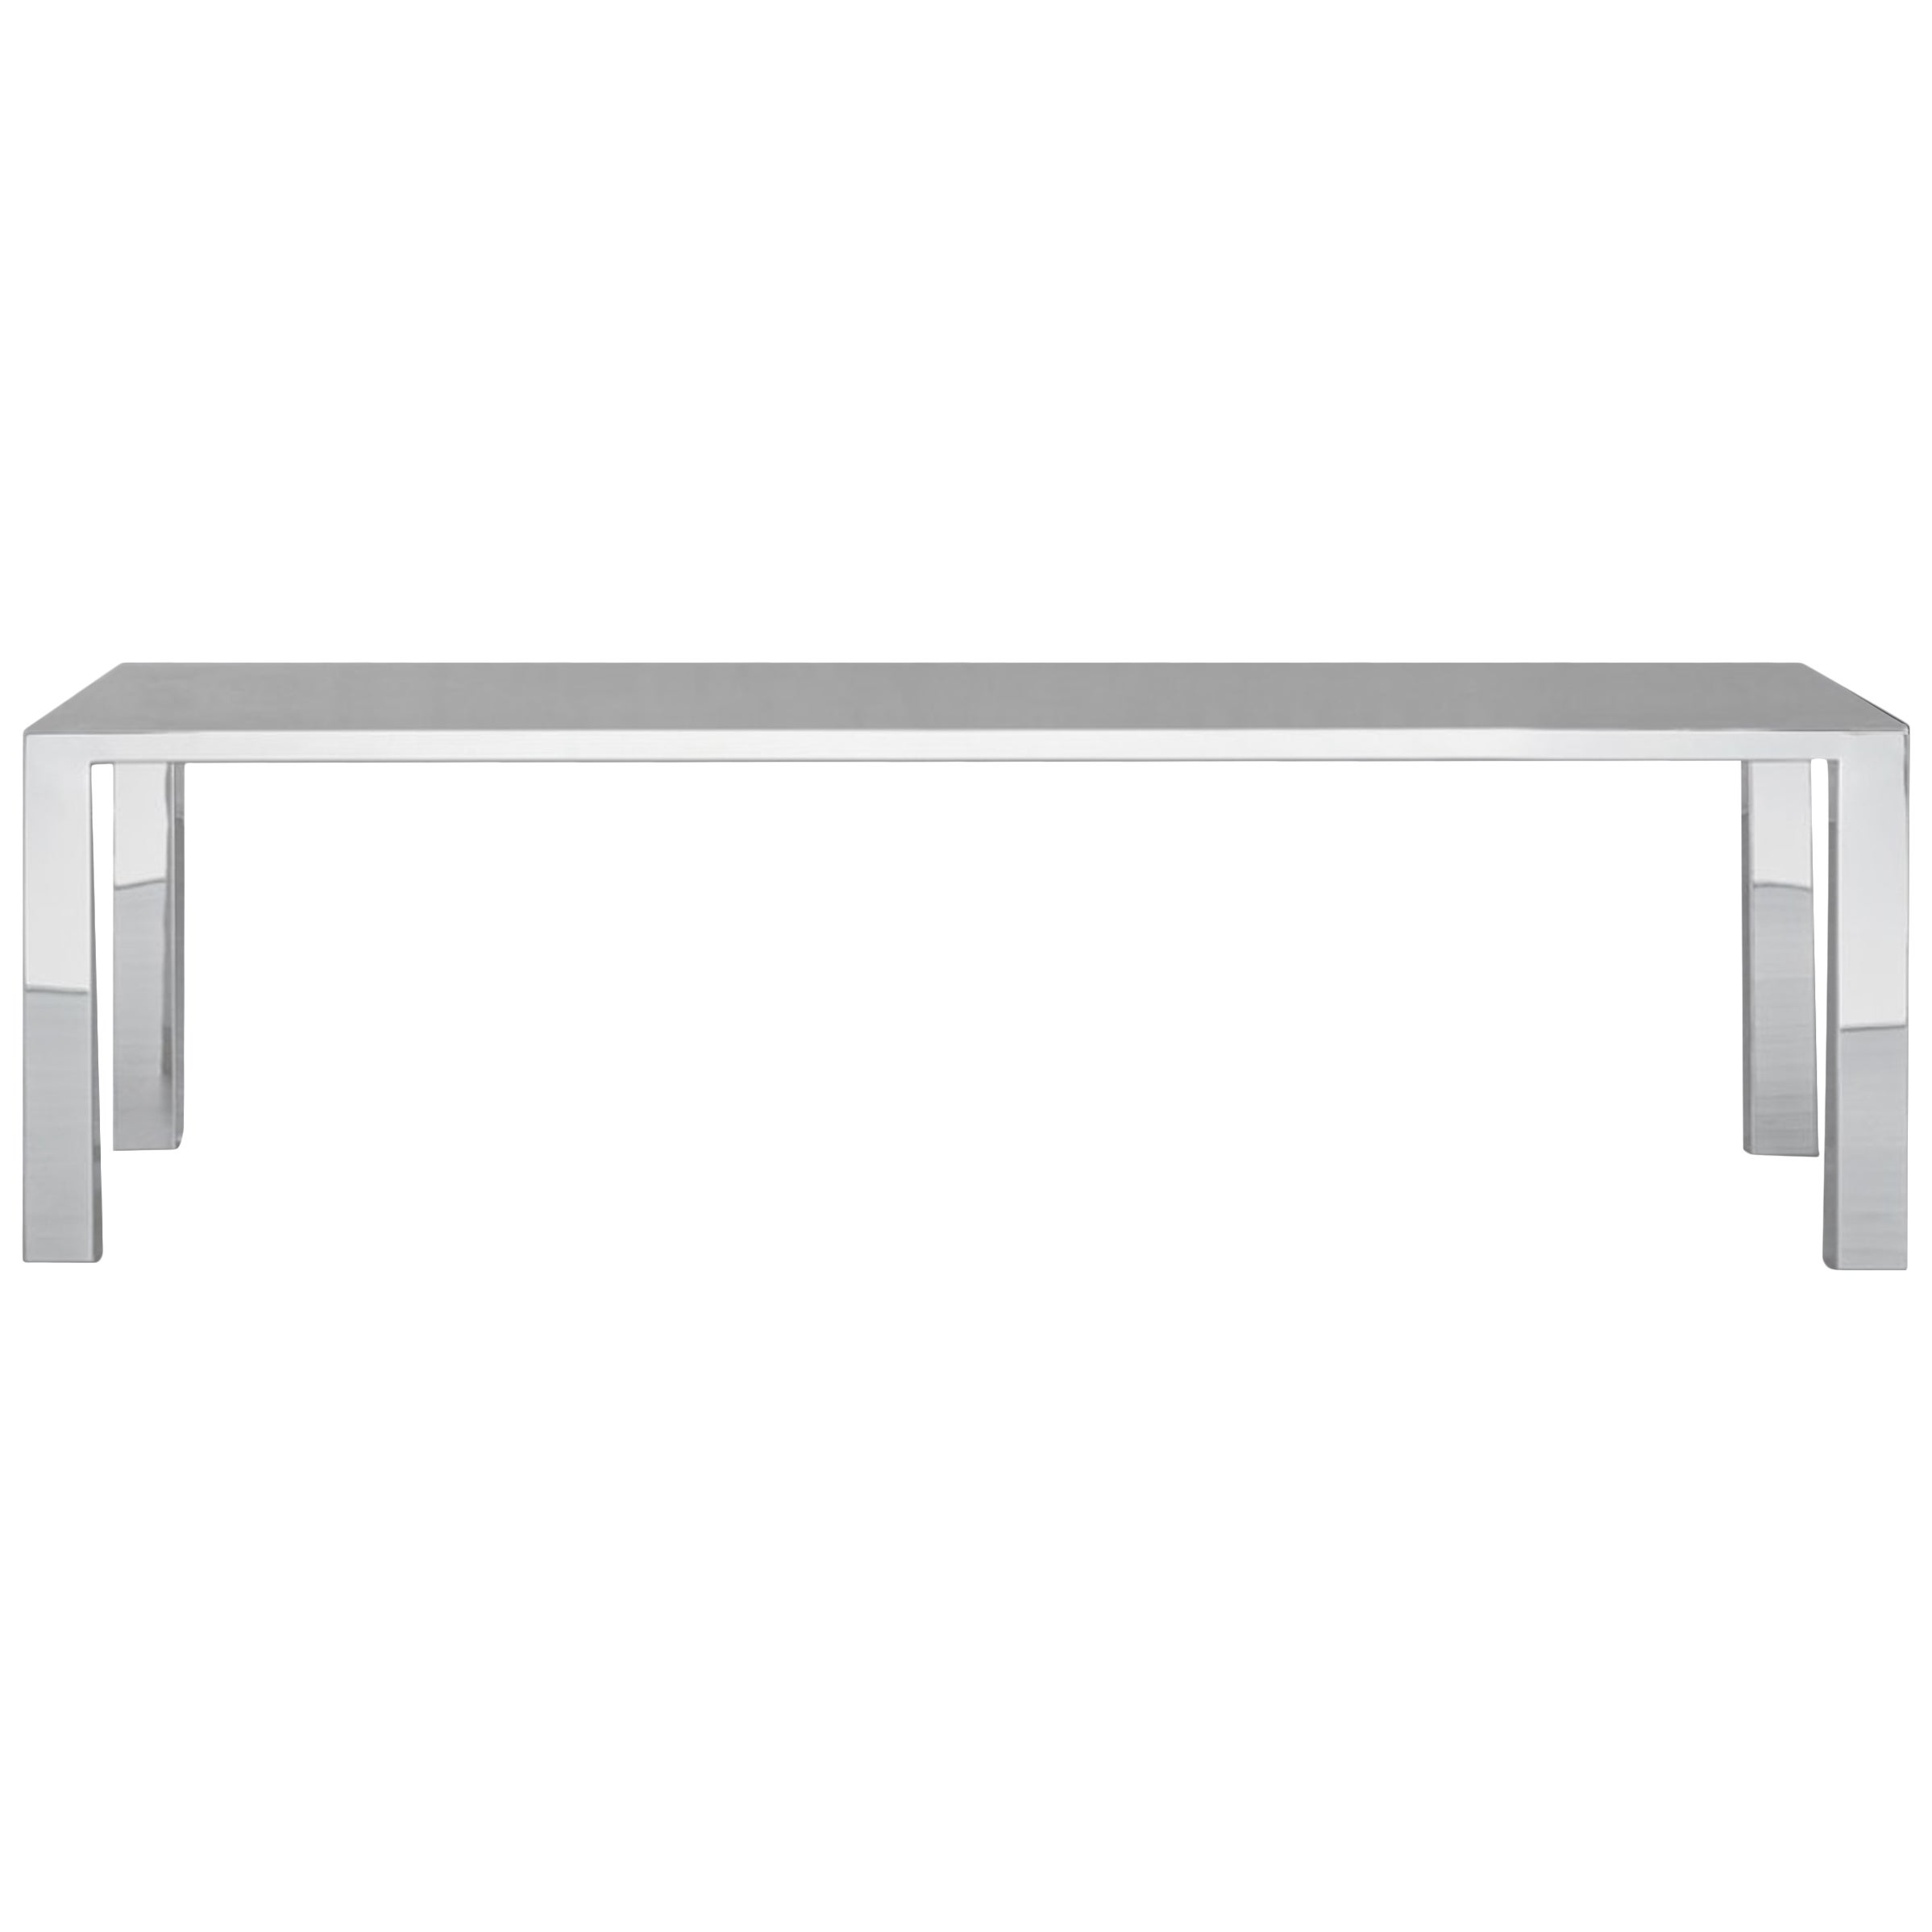 Sharp Mirror Table in Polished Stainless Steel